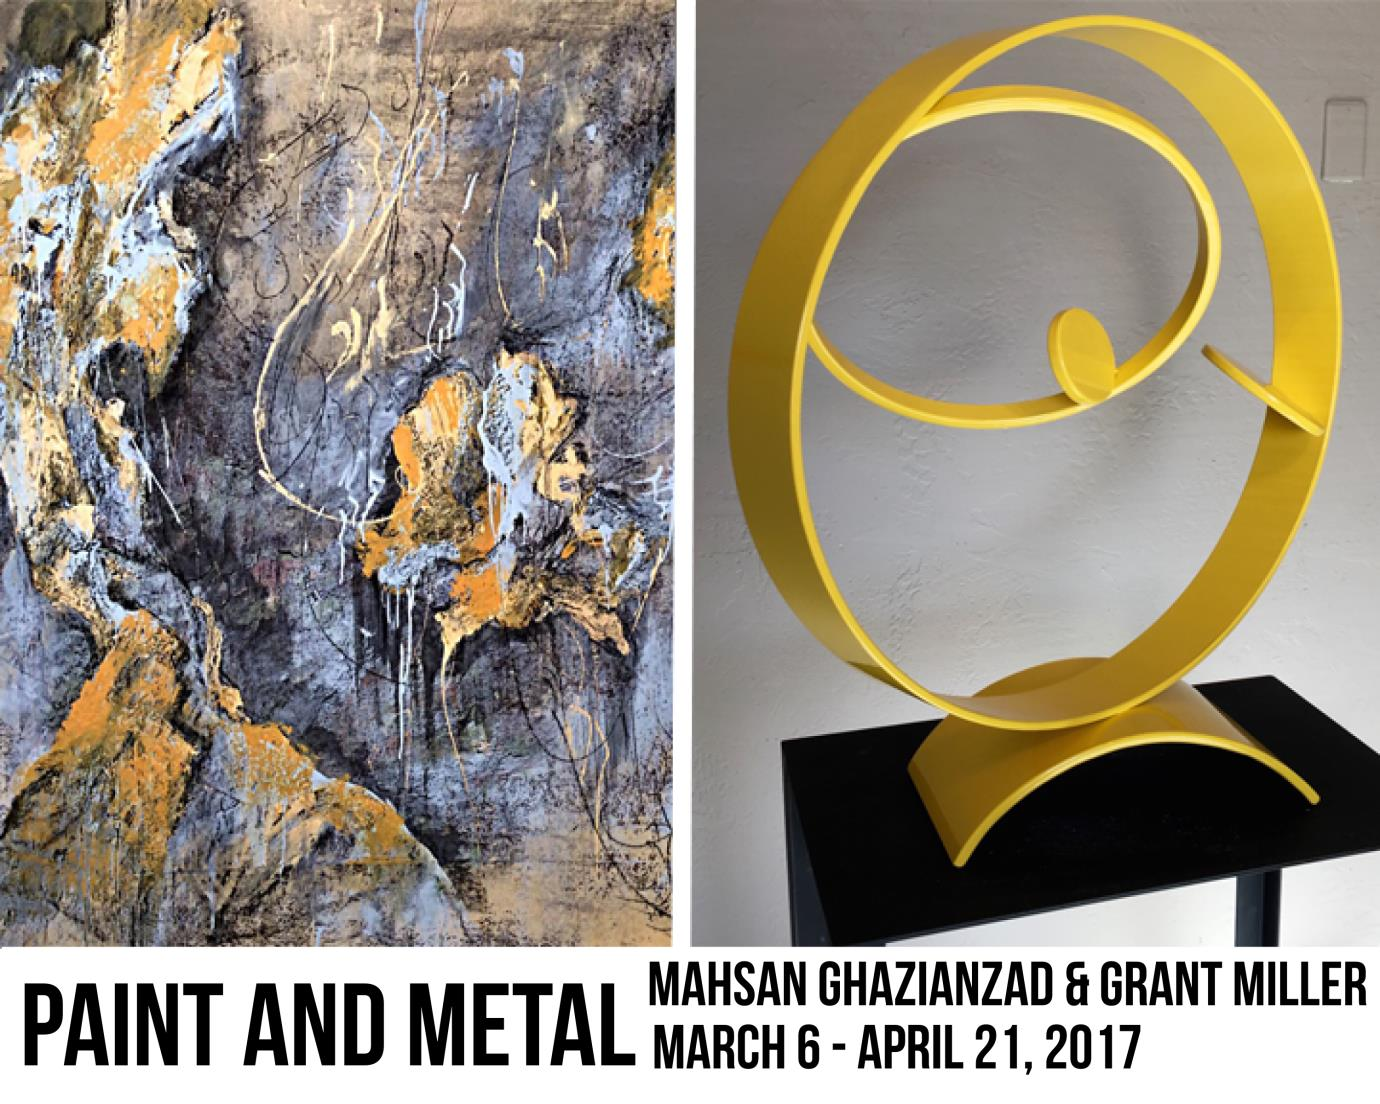 Yellow, Blue, and Black Abstract Painting on the left and a yellow circular metal sculpture on the right with the text Paint and Metal Mahsan Ghazianzad and Grant Miller, March 6 to April 21, 2017